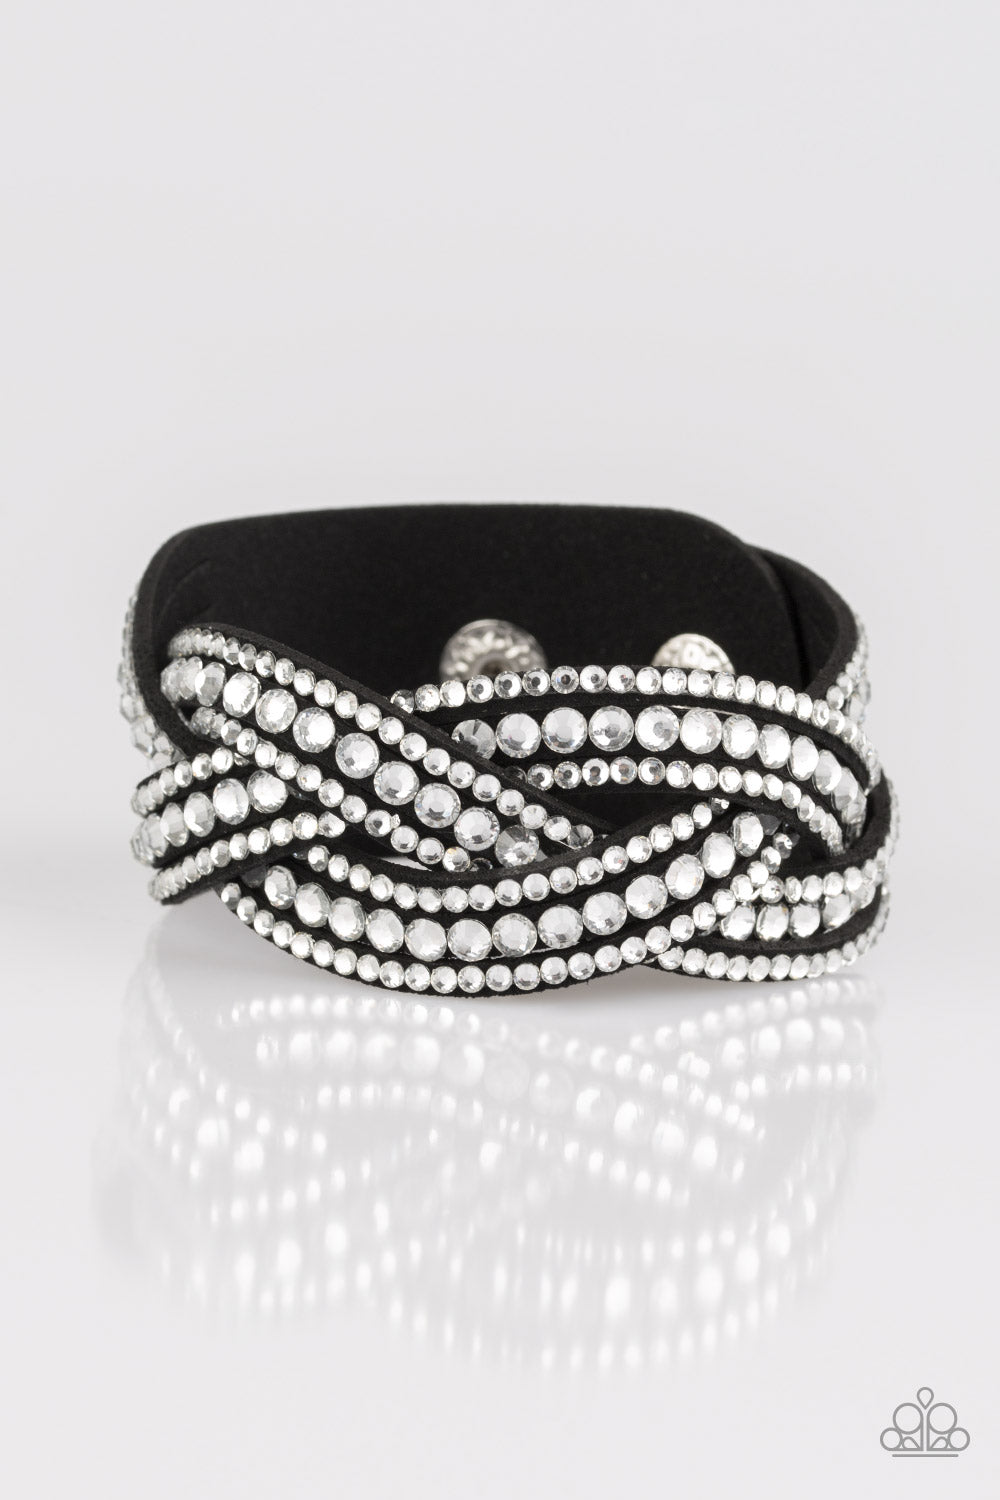 Bring On The Bling - Black - Paparazzi Accessories